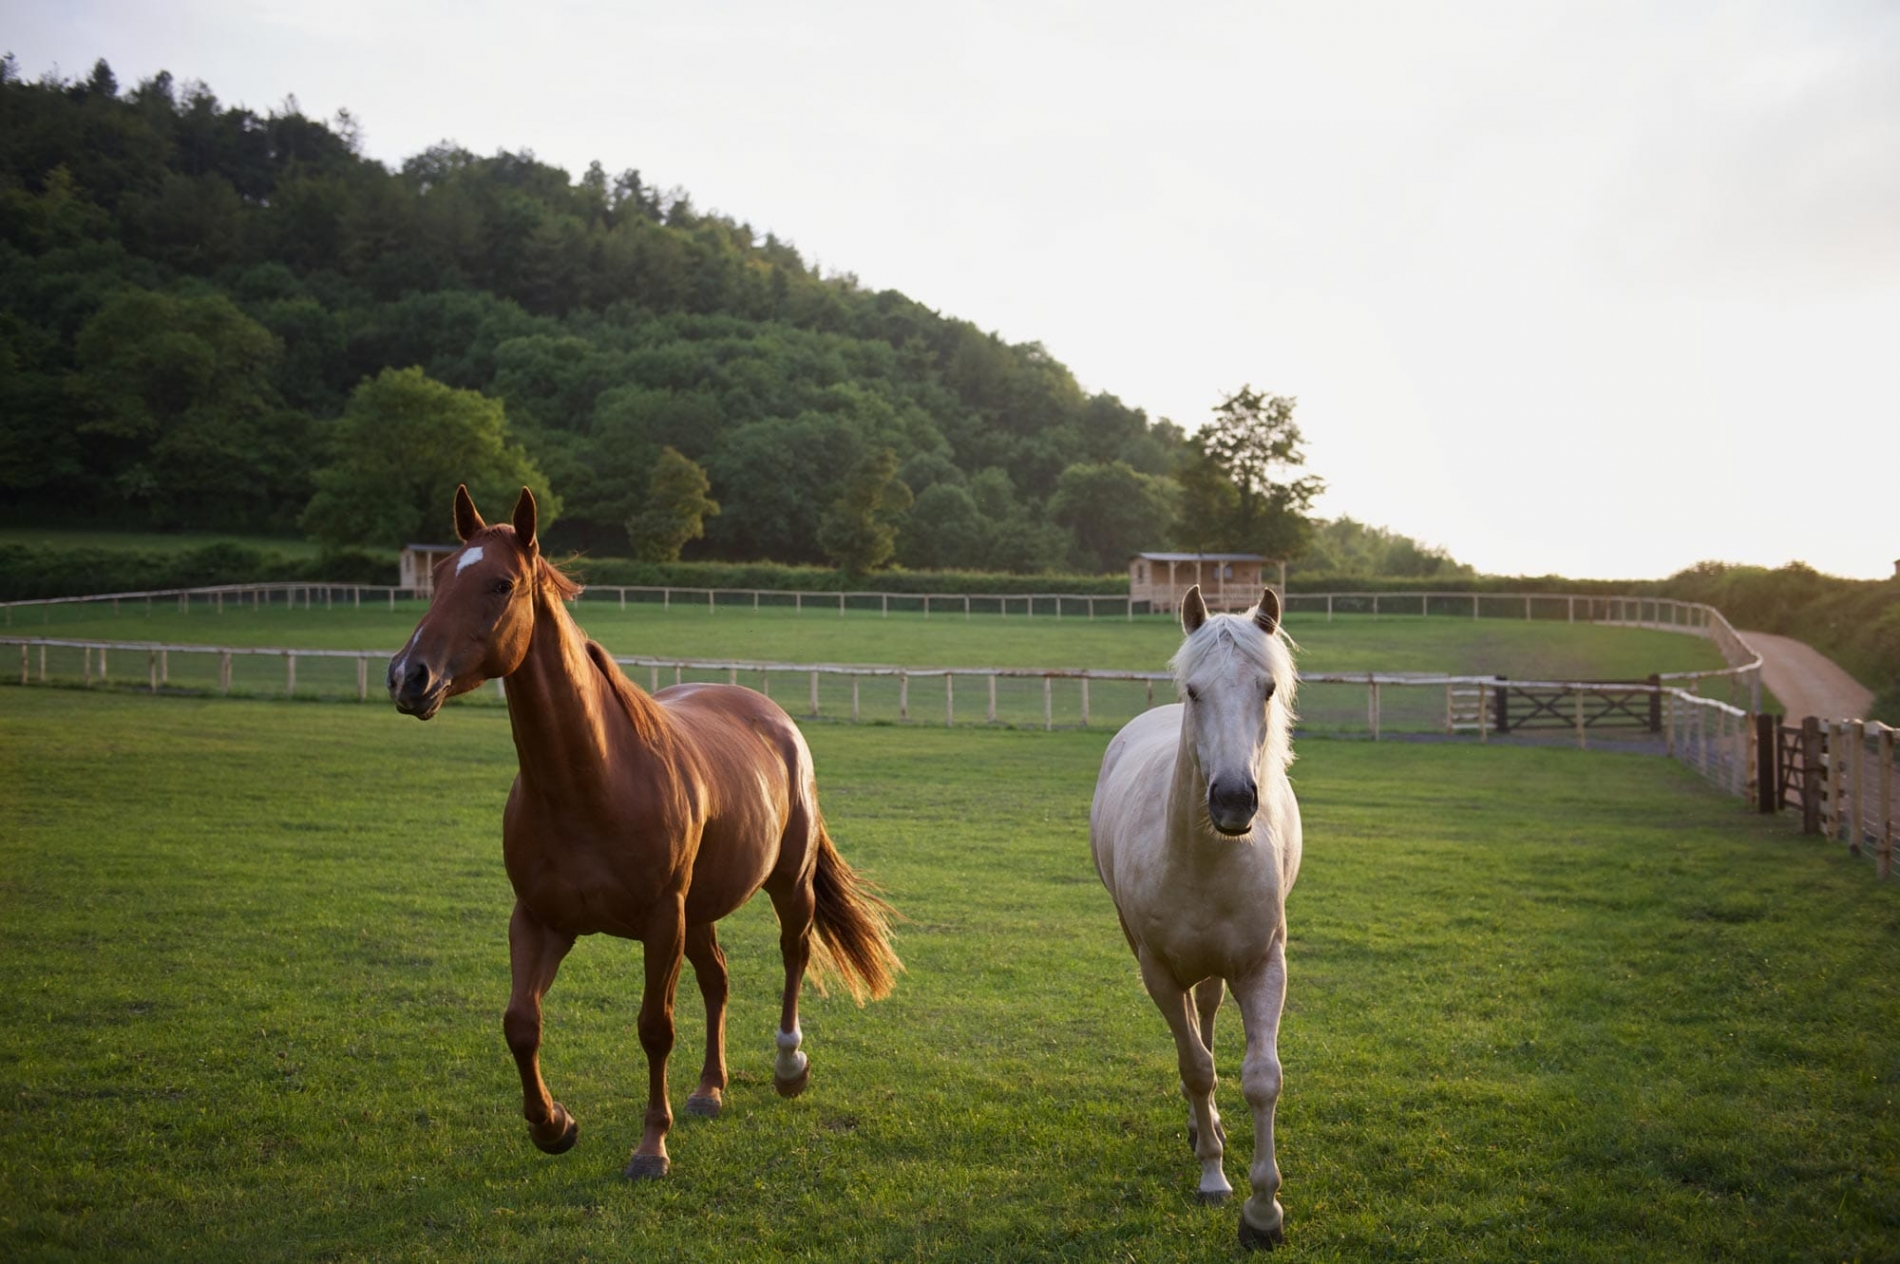 Horses at Loose Reins Dorset